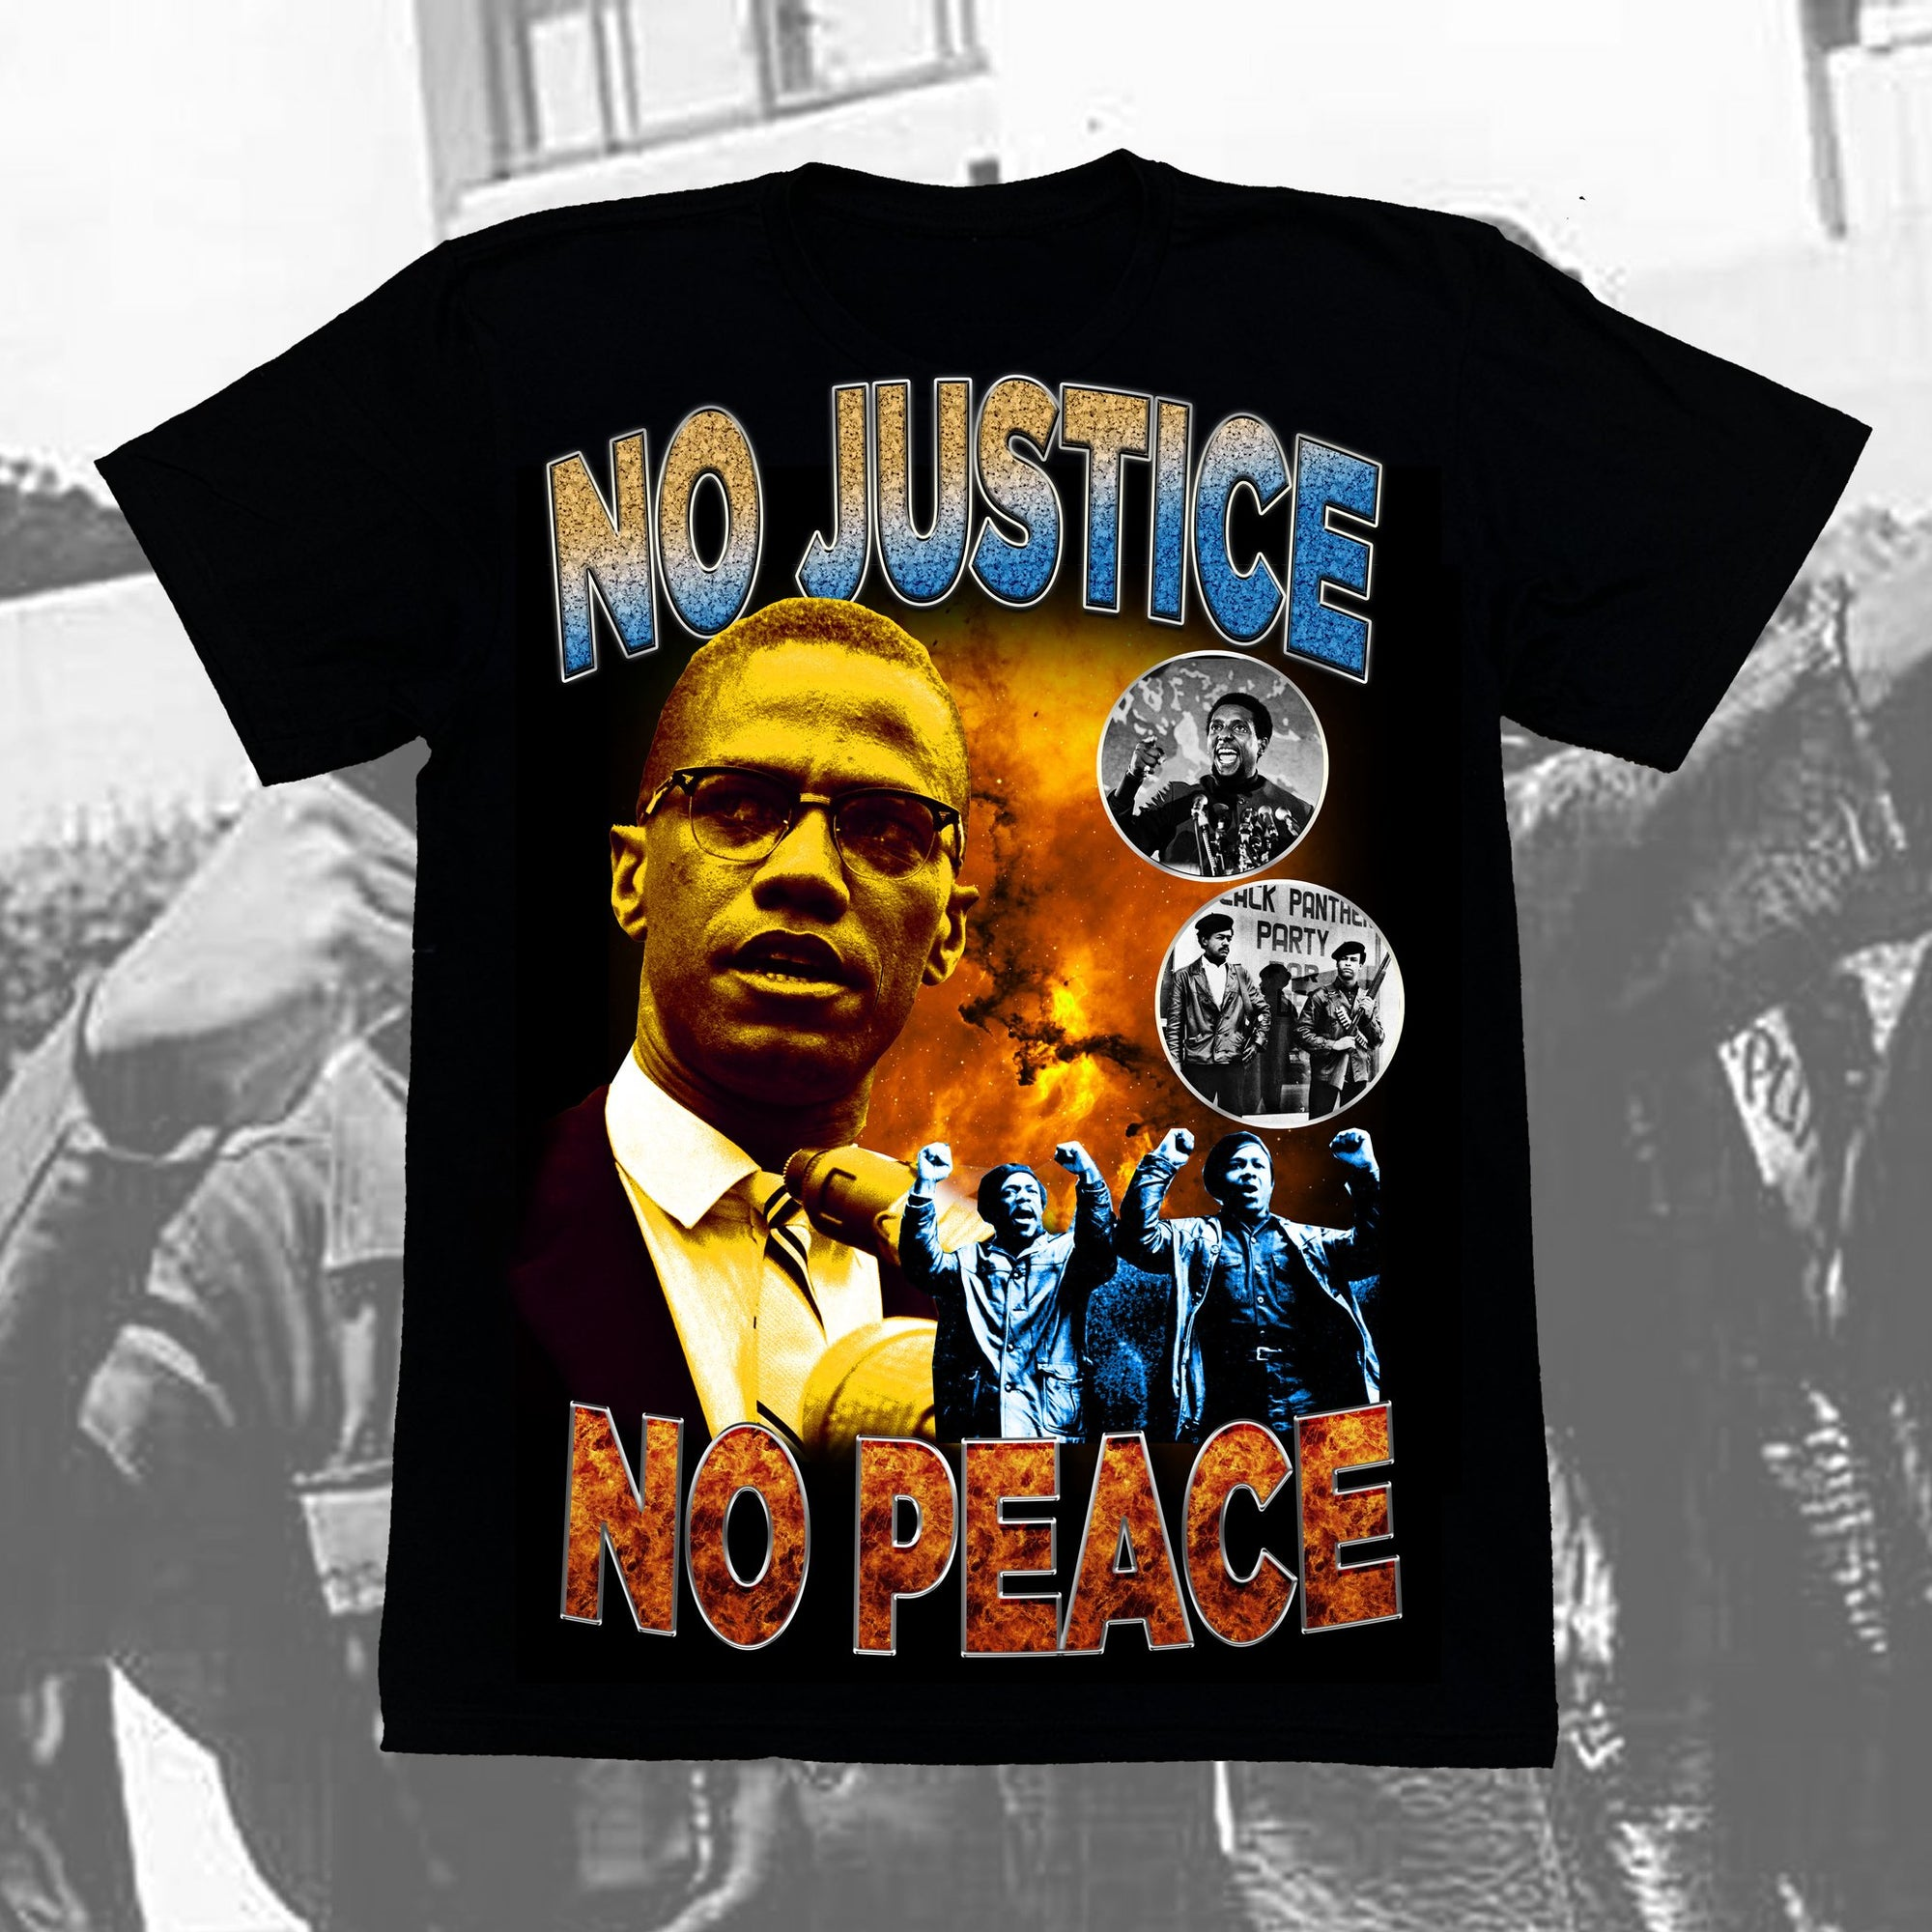 "Originals ""NO PEACE"" Vintage T-Shirt"